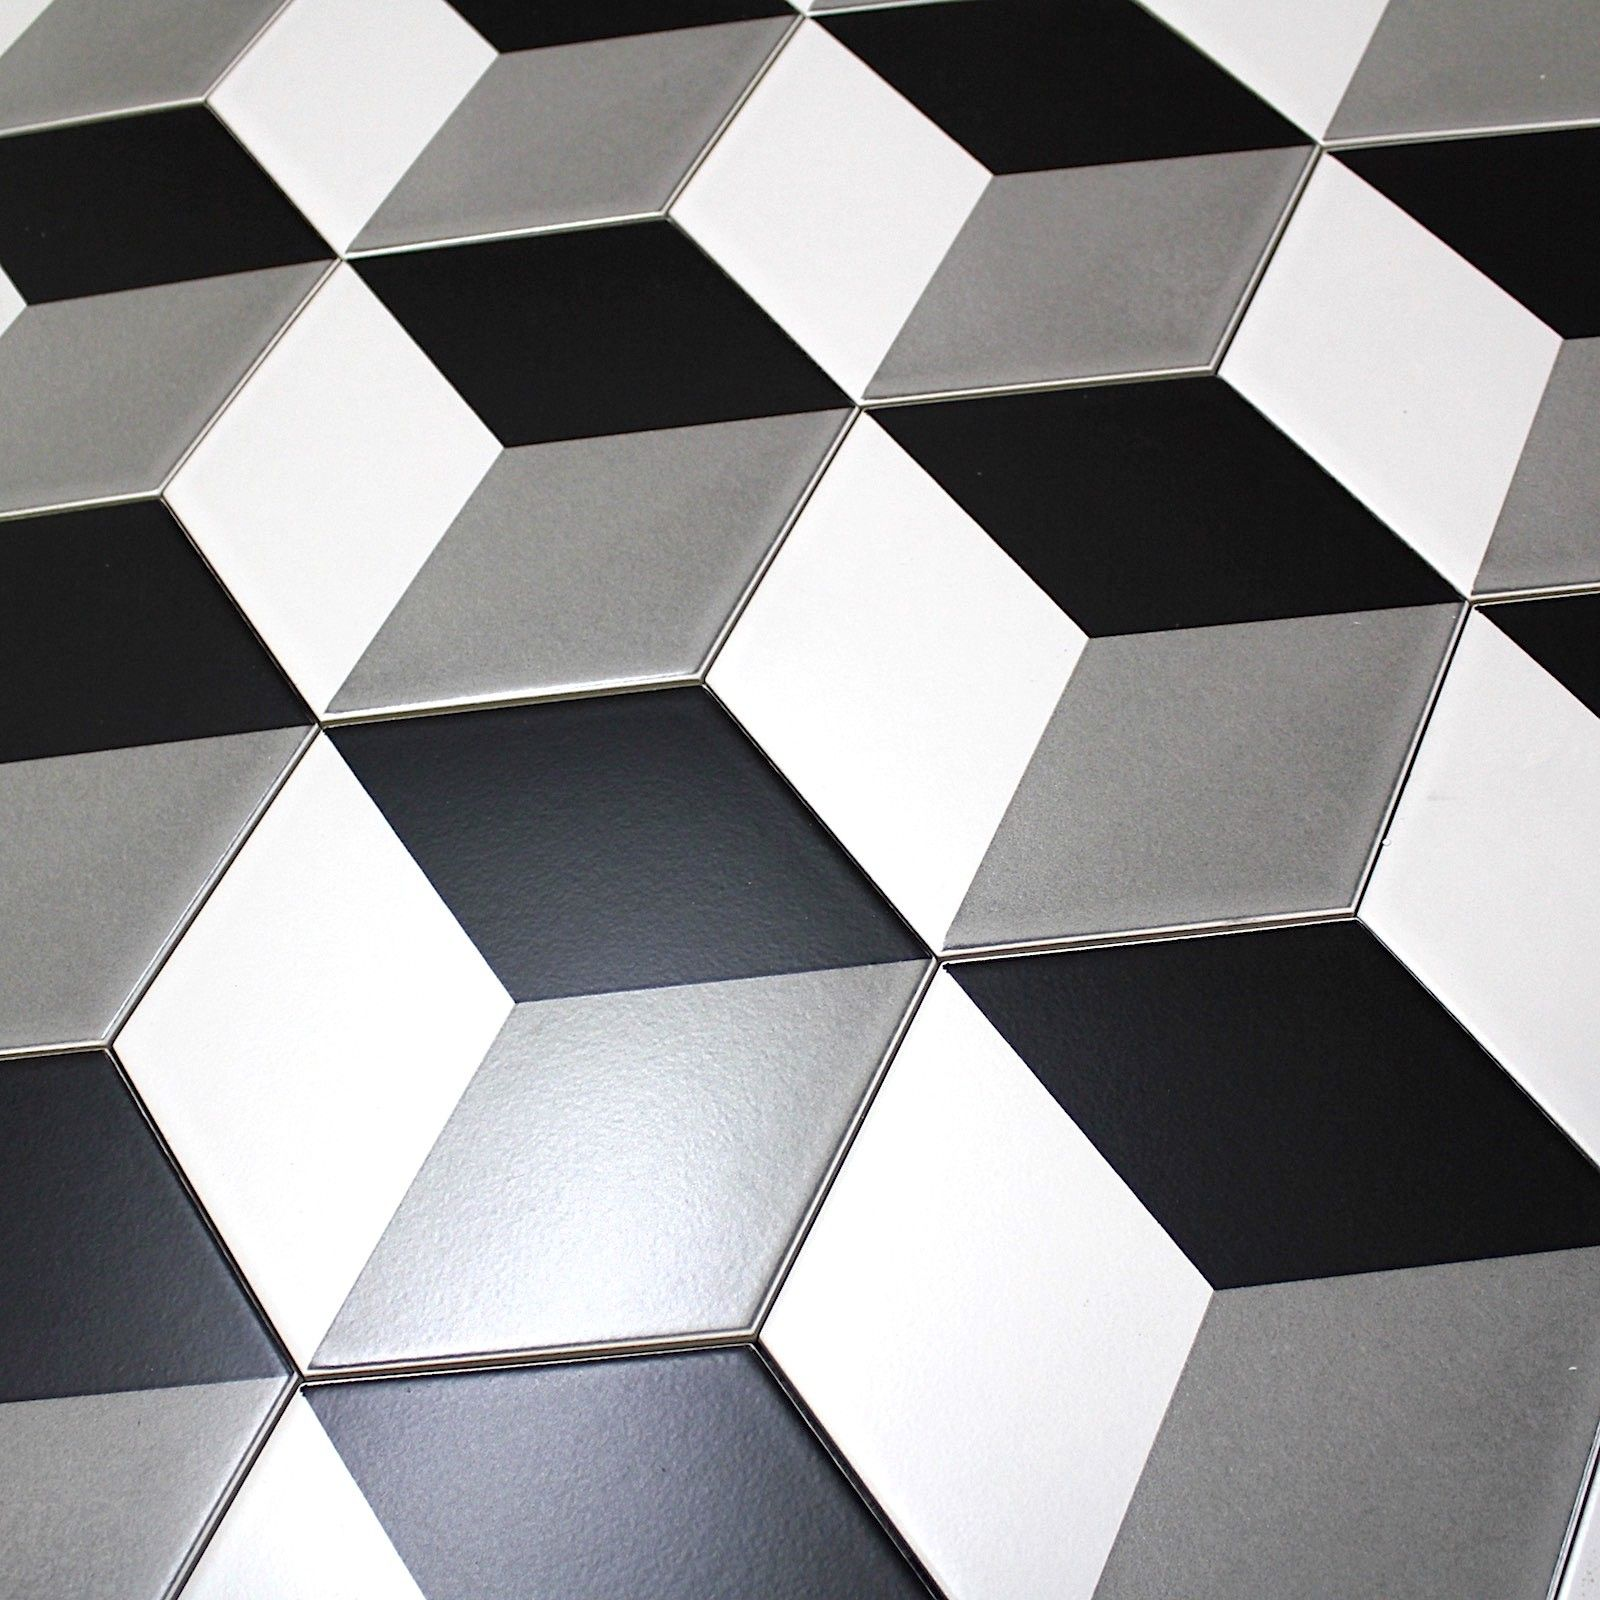 Carrelage imitation ciment noir et blanc hexagonal cim for Carrelage hexagonal couleur